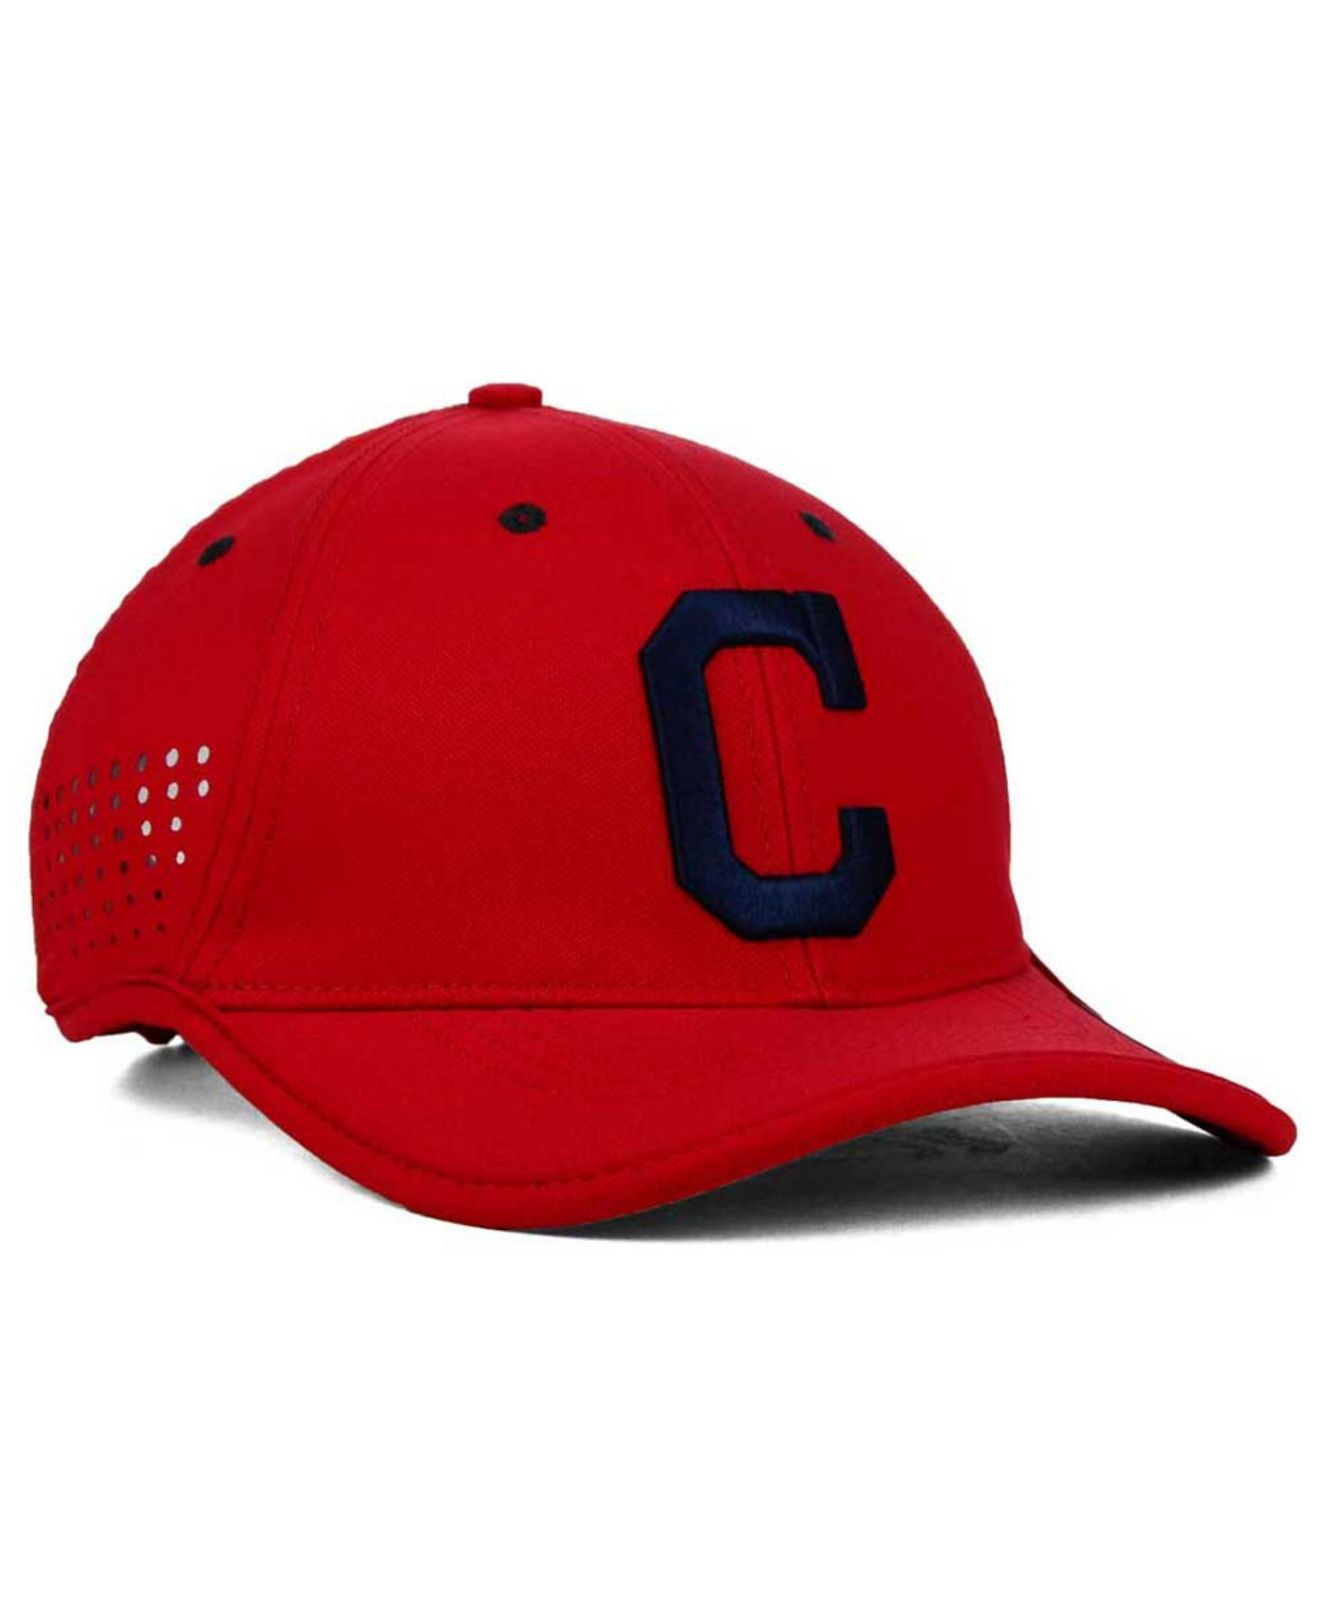 hot sale online c0bbf b6a06 ... where to buy lyst nike cleveland indians vapor swoosh adjustable cap in  red for men c35e4